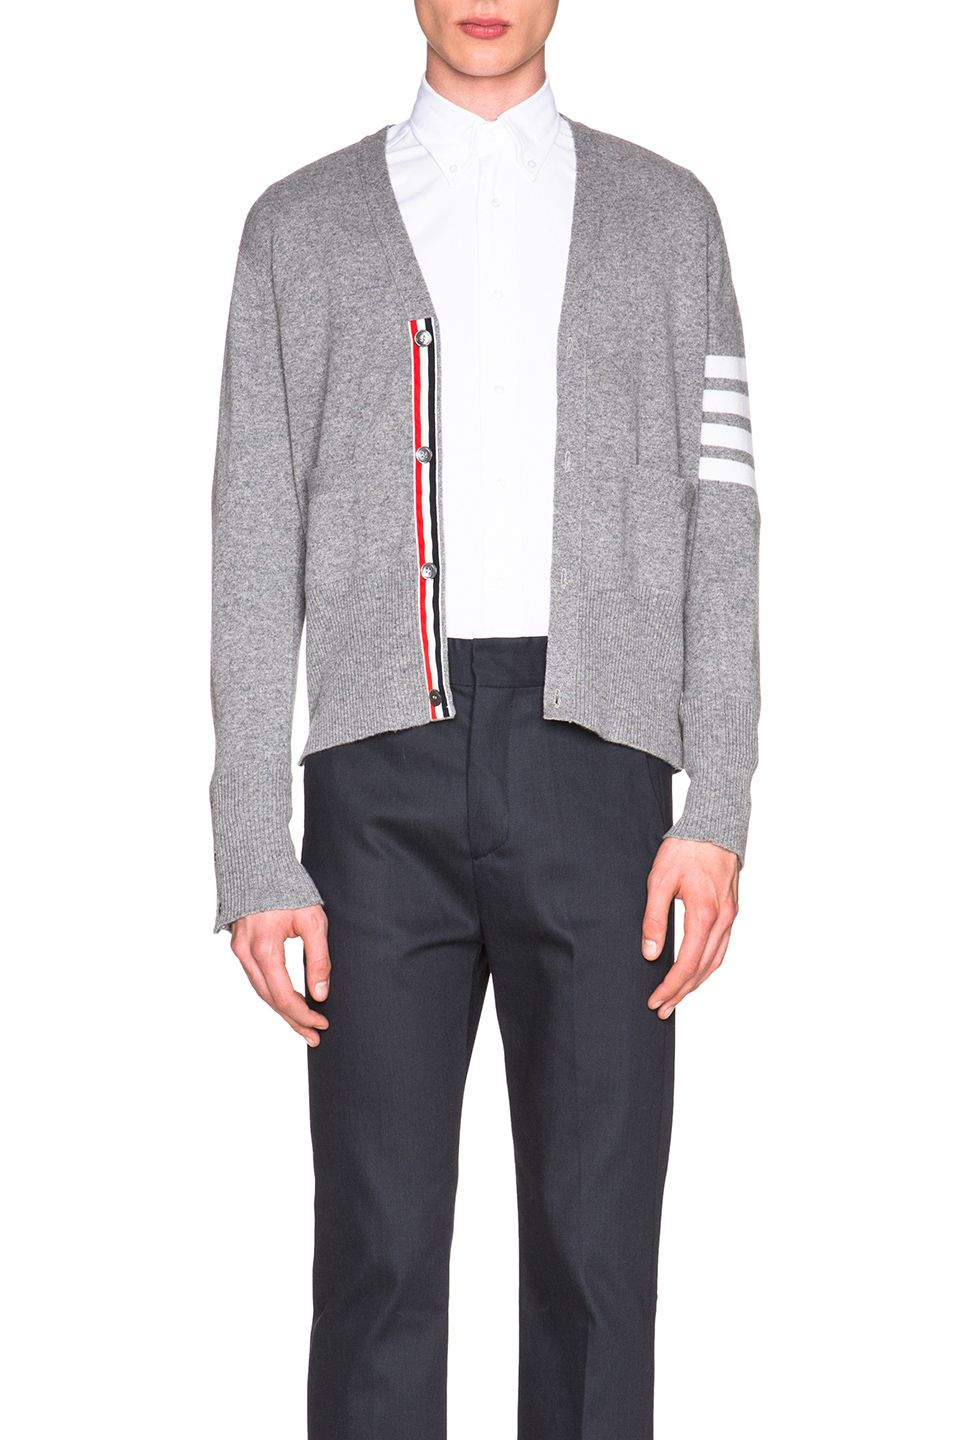 Thom Browne Classic Cashmere Cardigan in Light Grey | My Style ...